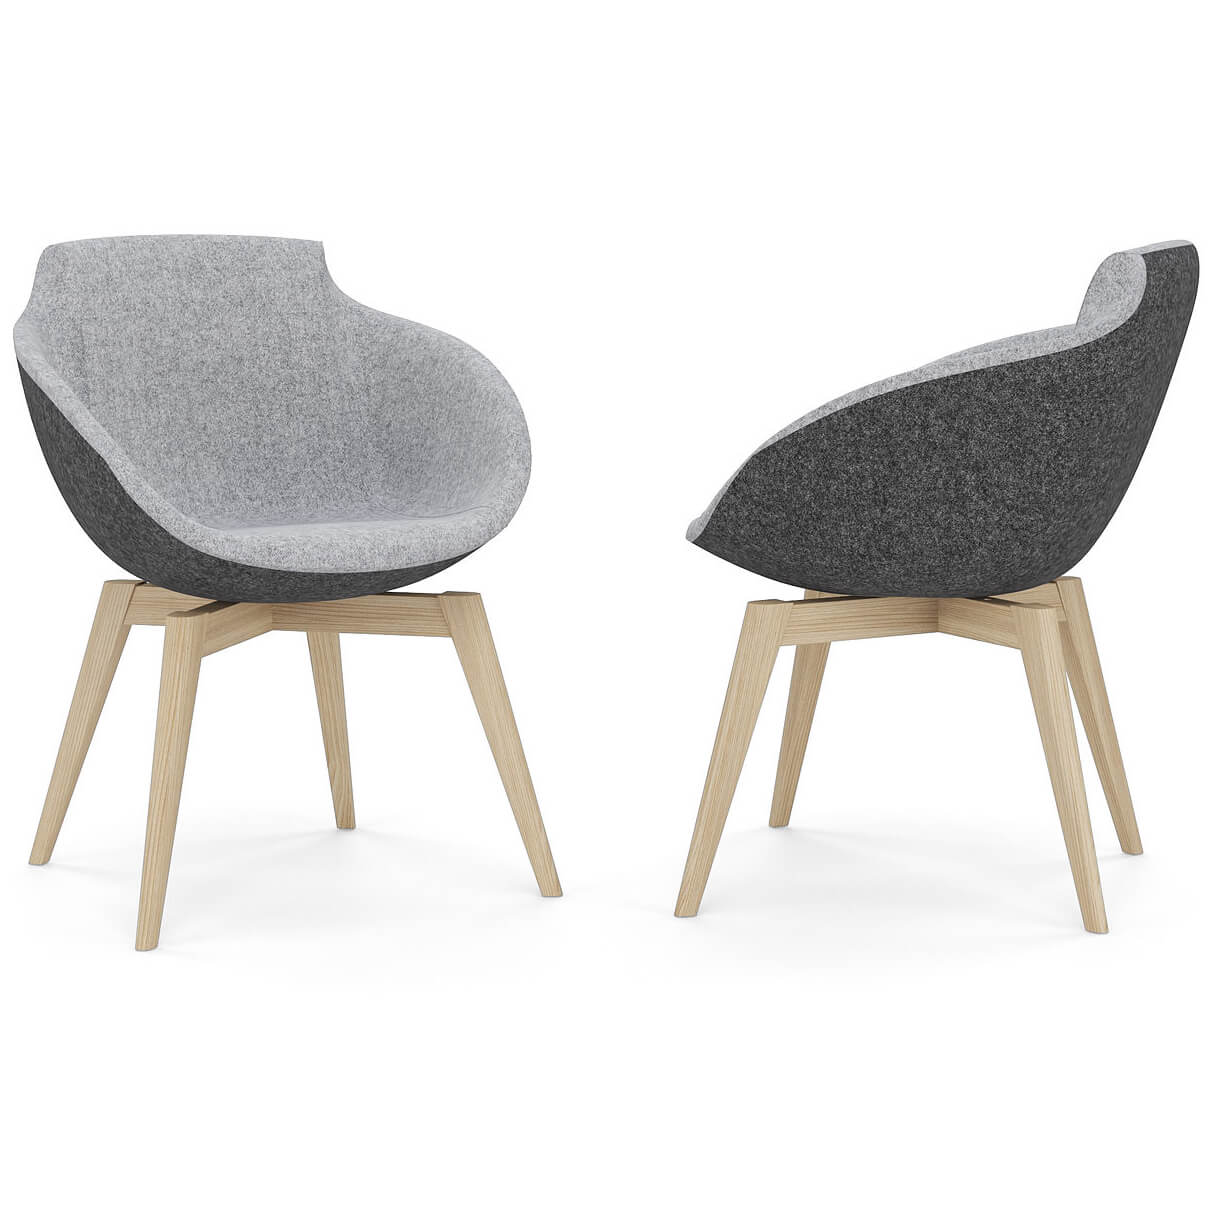 Lounge-sessel 808 Lounge Sessel Mit Hocker